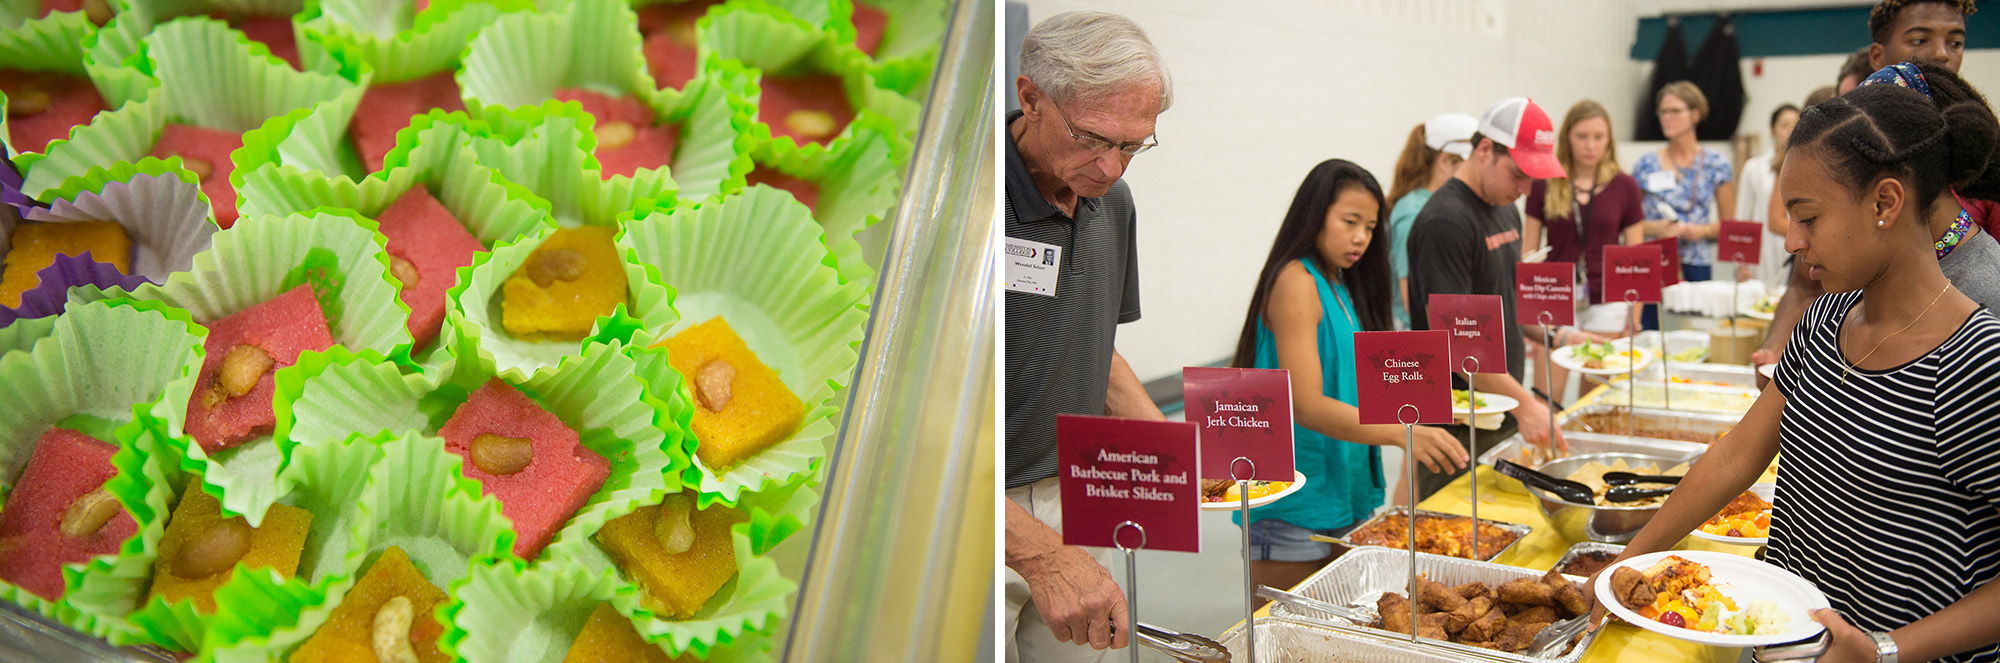 International fare at the Global Tastings Meal included a special cashew dessert prepared by President Manickam's sisters as well as jerk chicken, lasagne, egg rolls and a host of international flavors.